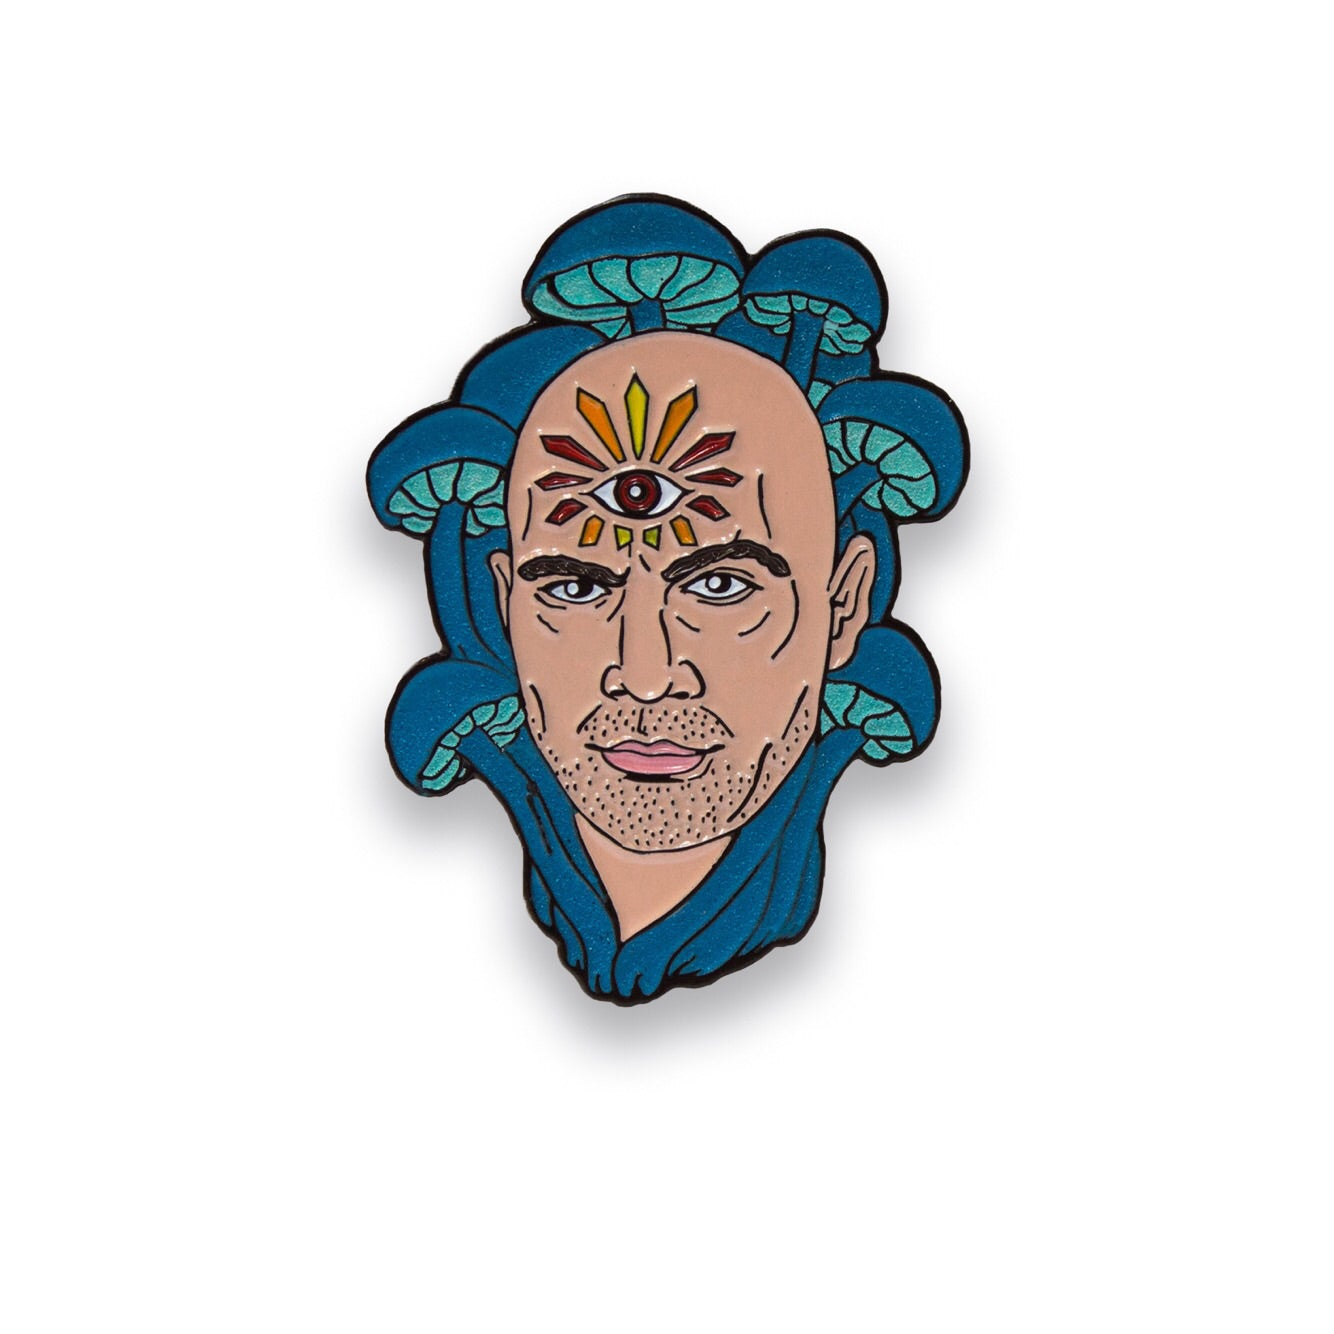 Joe Rogan Enamel Lapel Pin - Glow in the dark